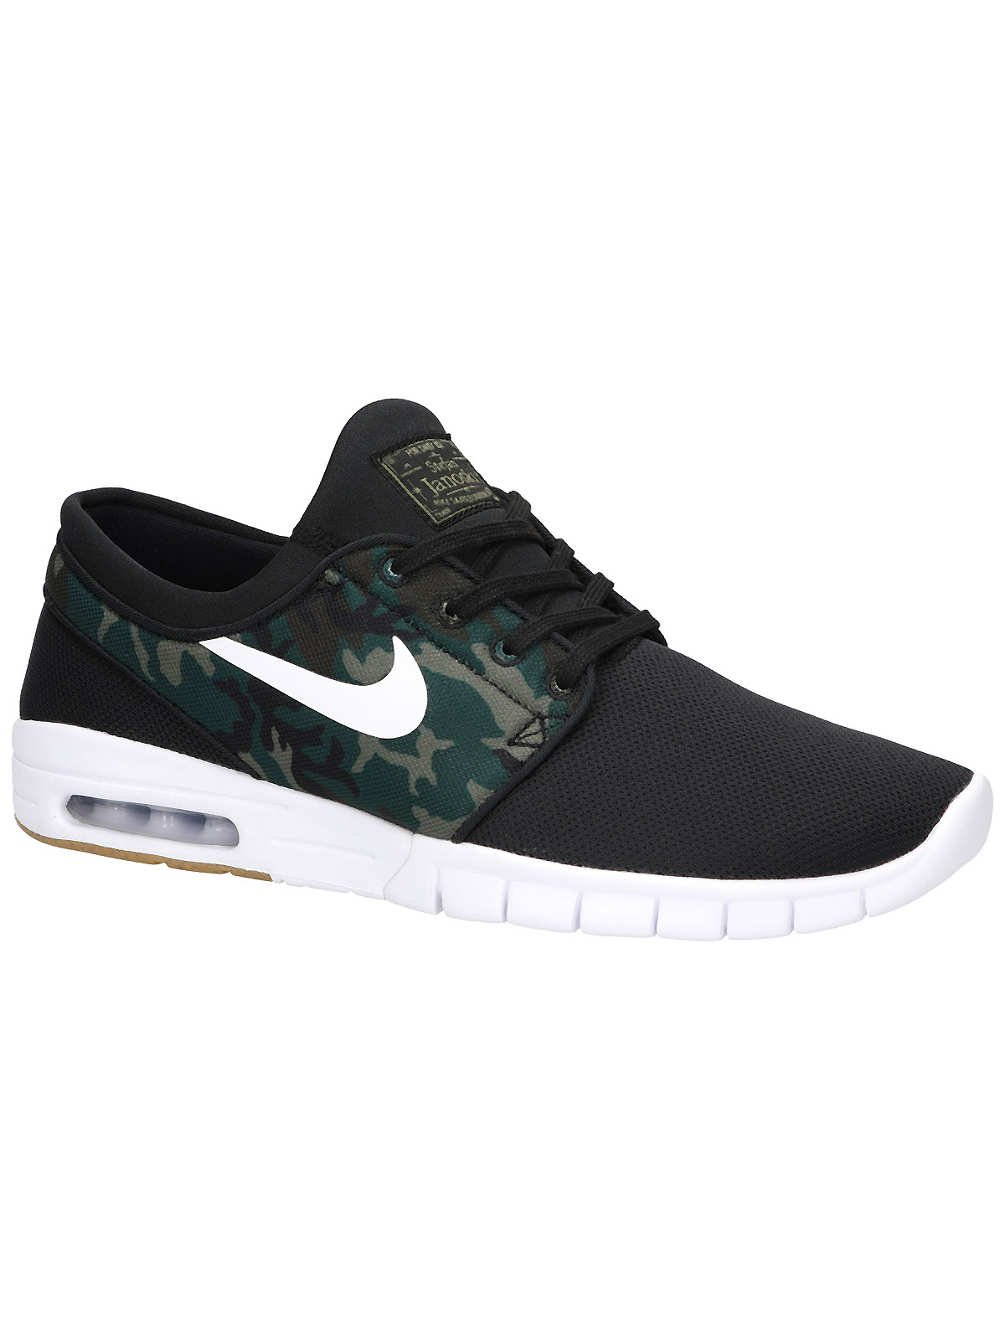 Nike SB Stefan Janoski Max Men's Shoes 14 D(M) US|Black/White-multi-color